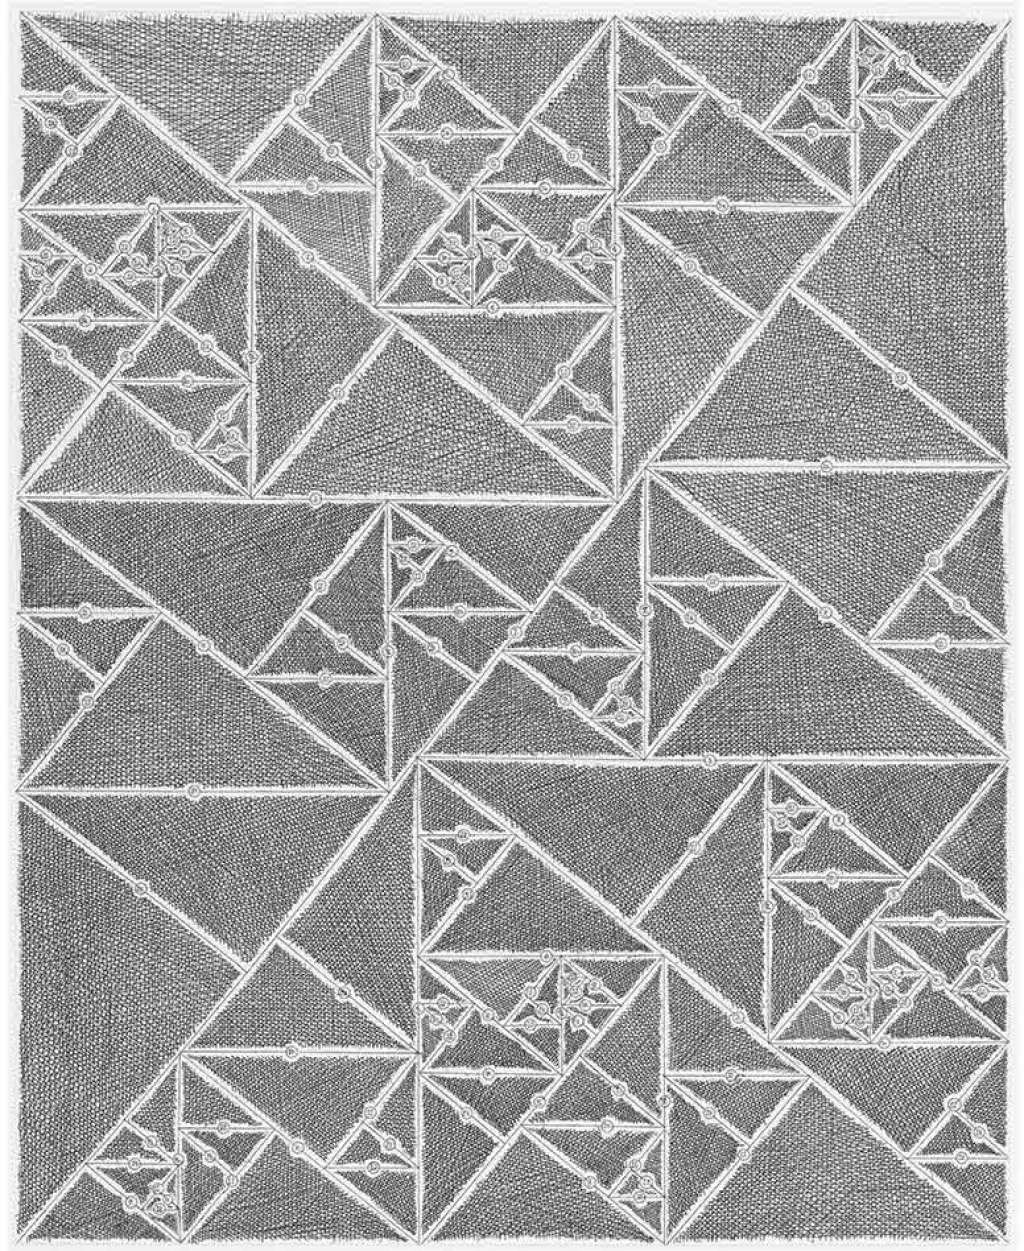 James Siena, Numbered Triangle Sequence